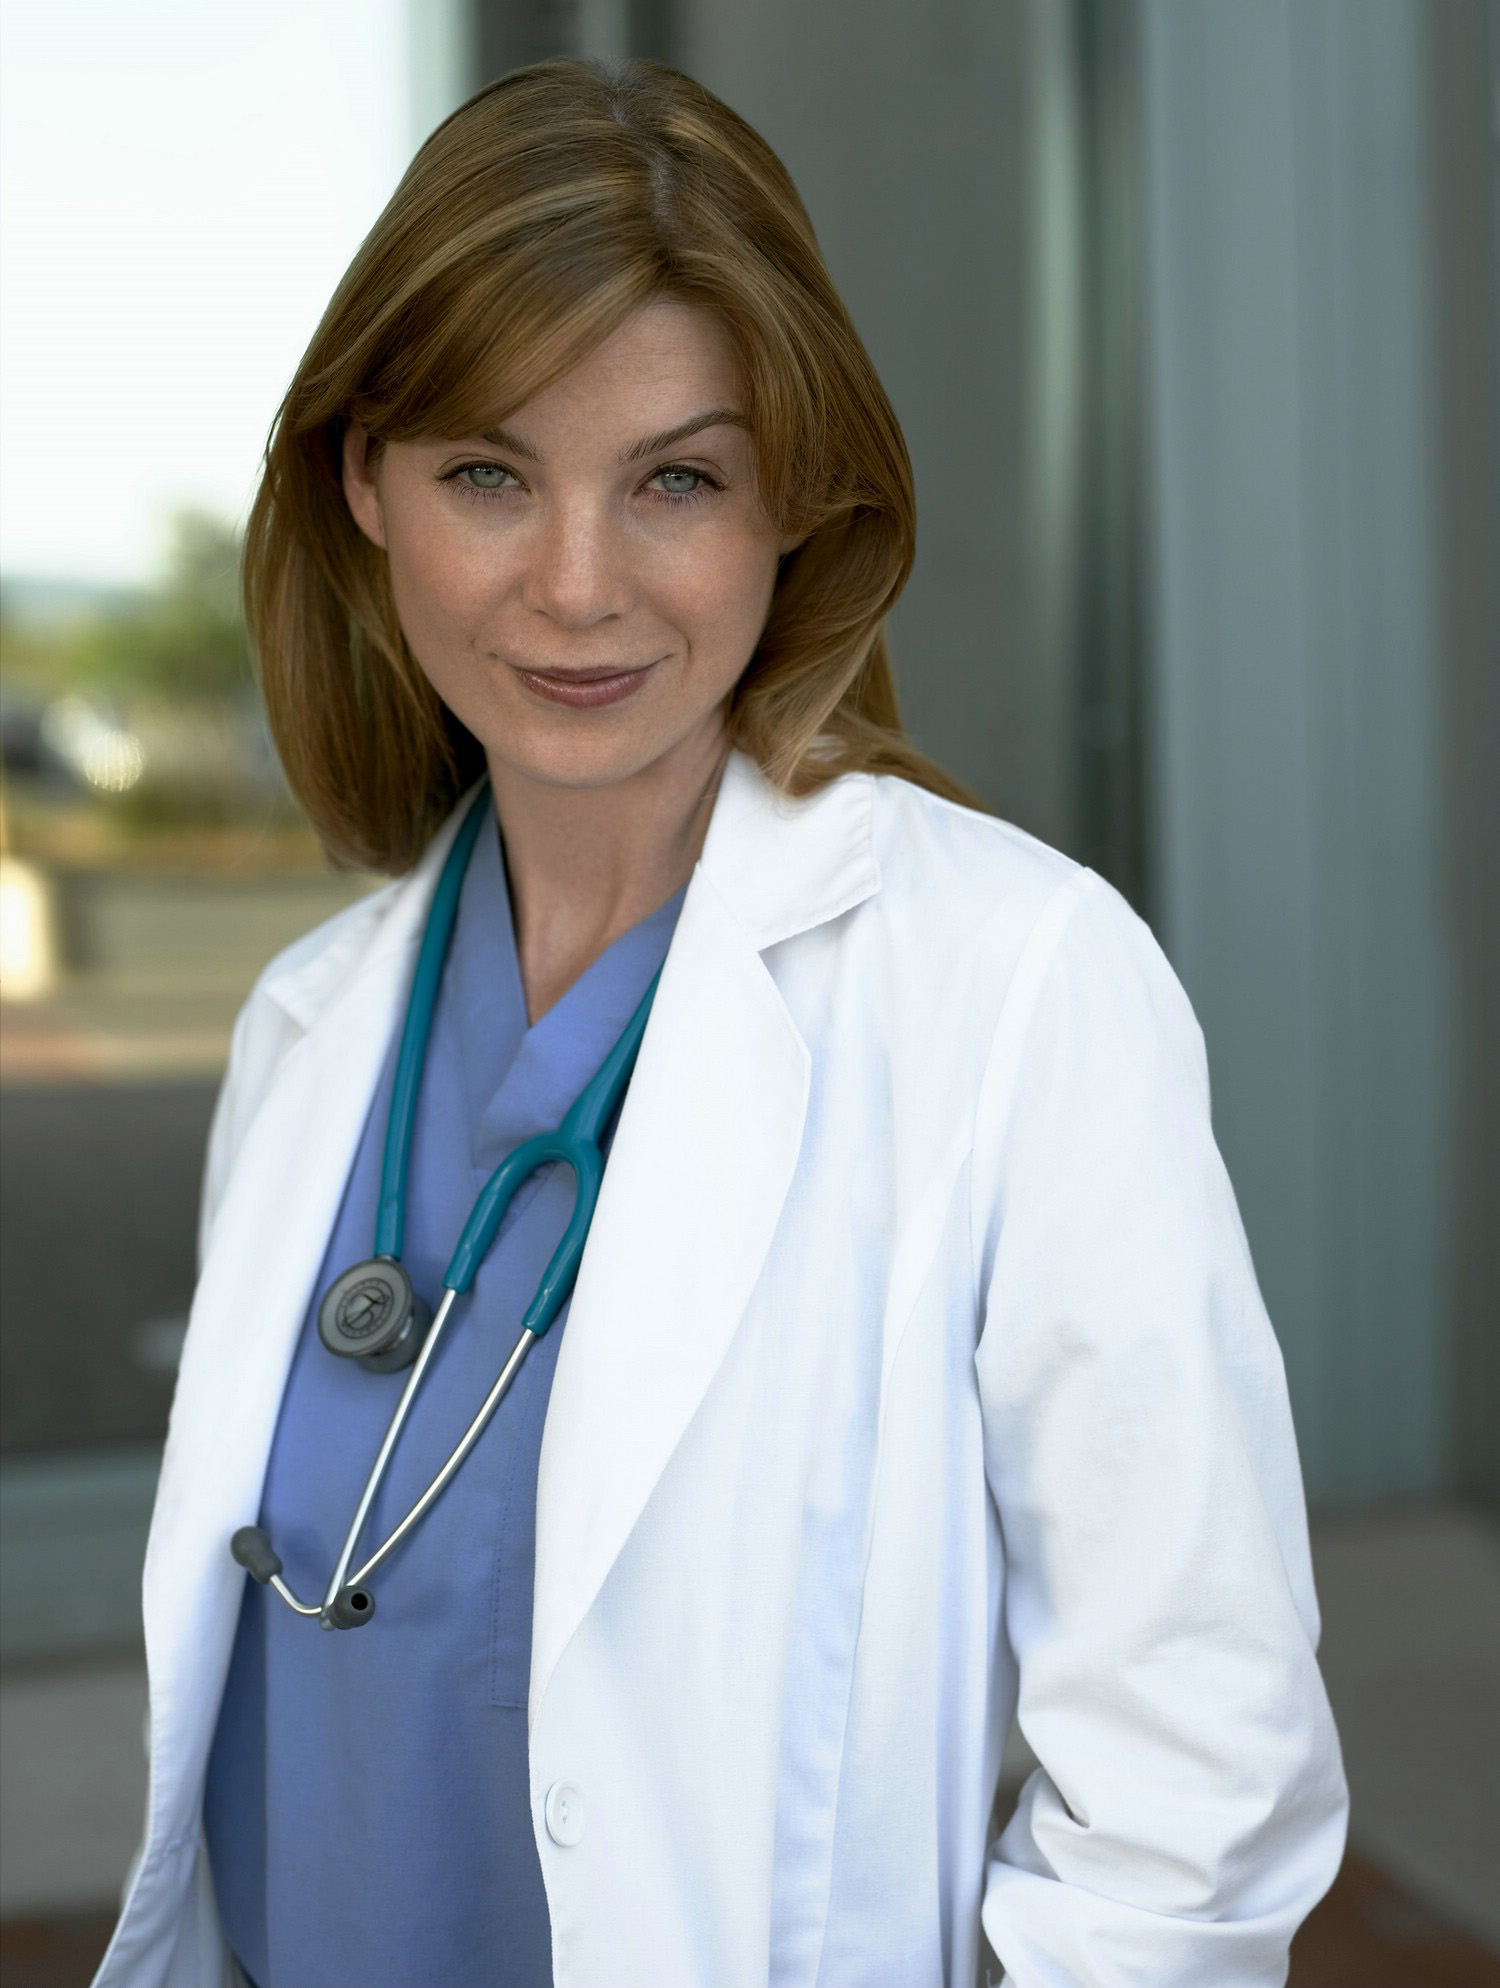 When Does Greys Anatomy Season 13 Episode 10 Air In Uk images